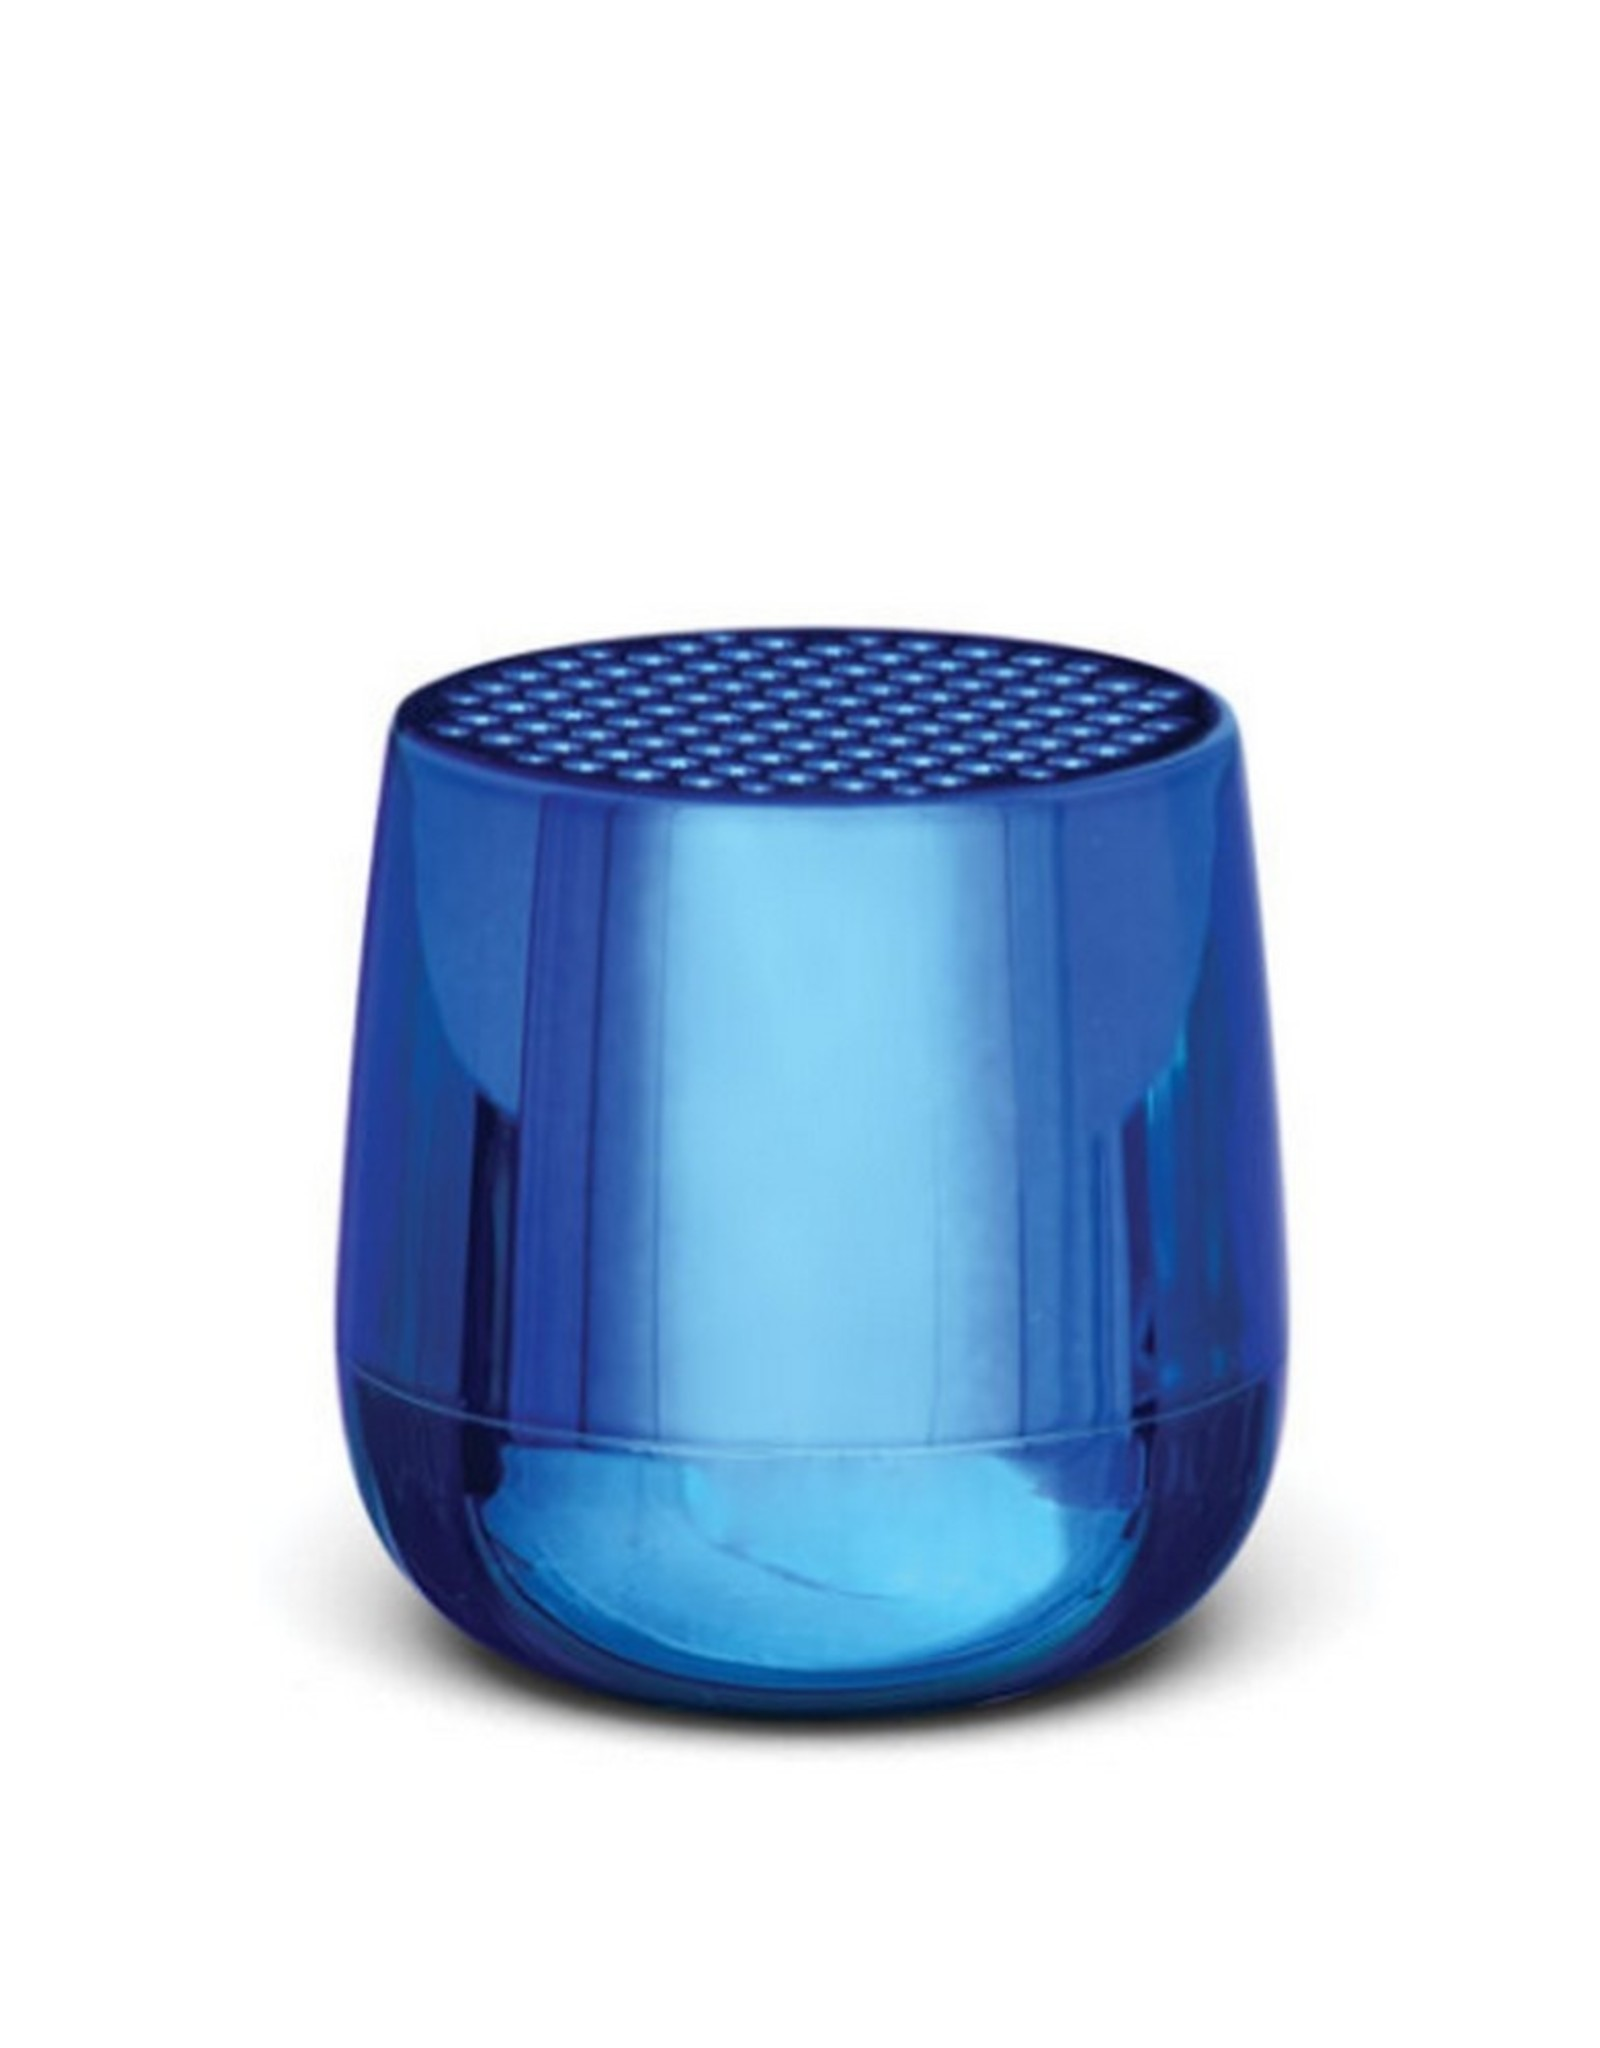 Lexon Speaker Bluetooth Mino + Metallic Blue